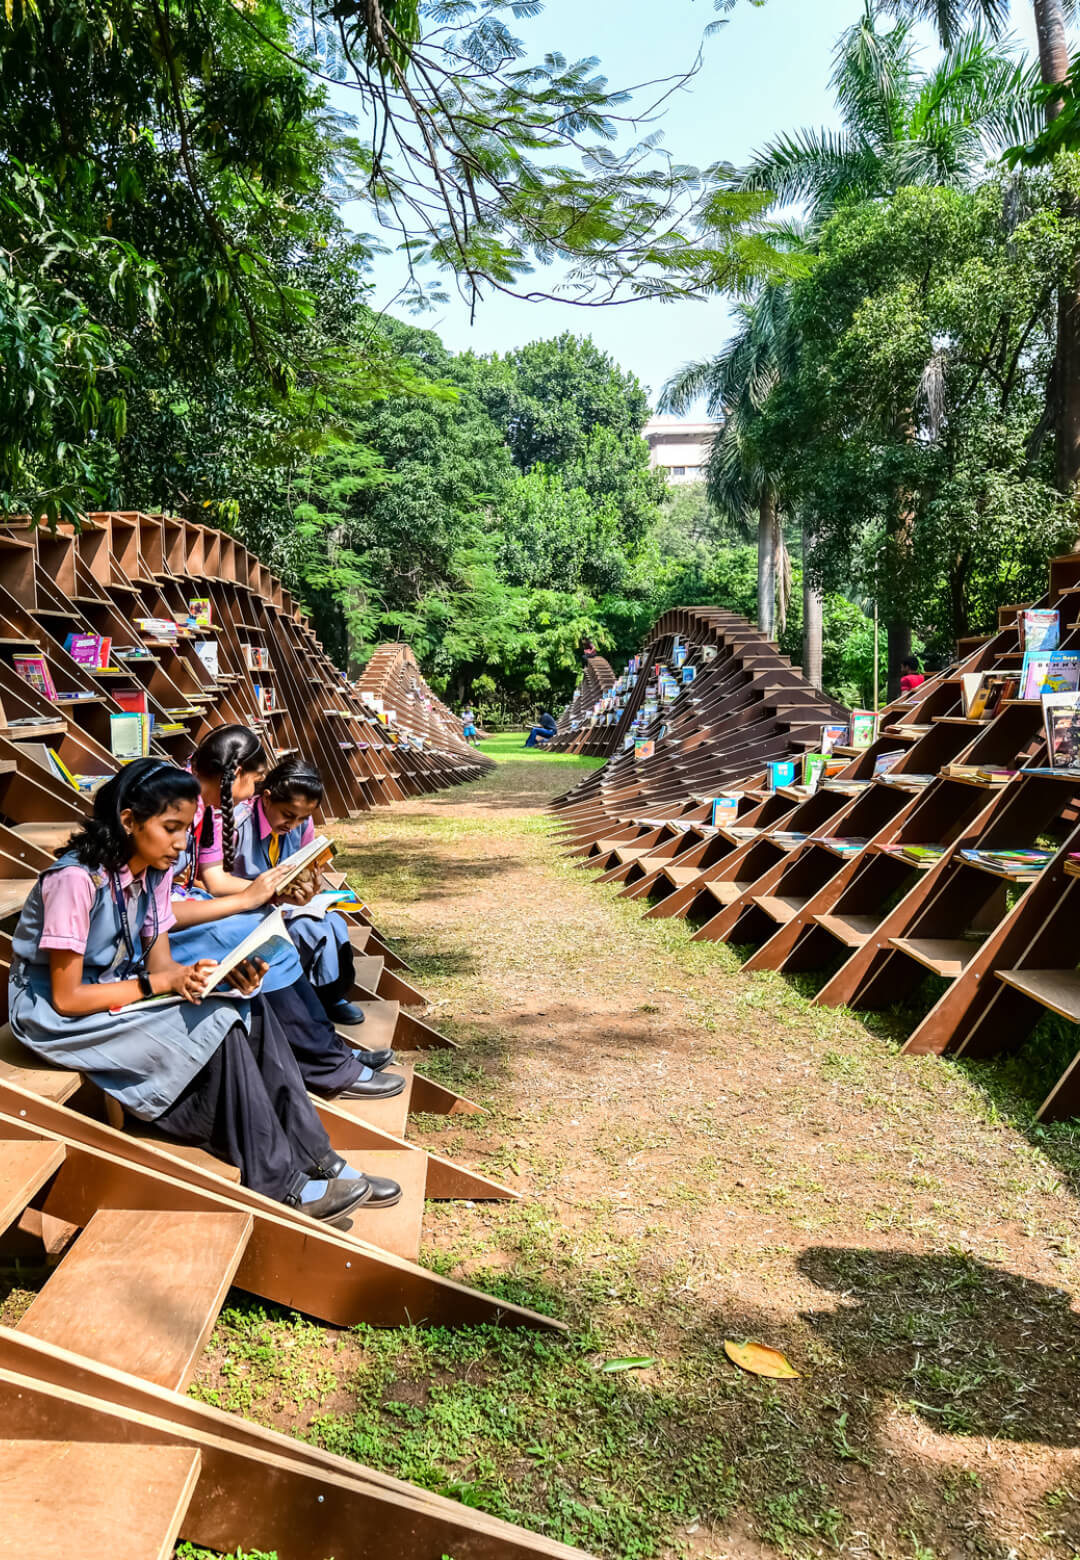 The Bookworm pavilion at the CSMVS museum grounds | Bookworm pavilion| Nudes | Nuru Karim | STIRworld